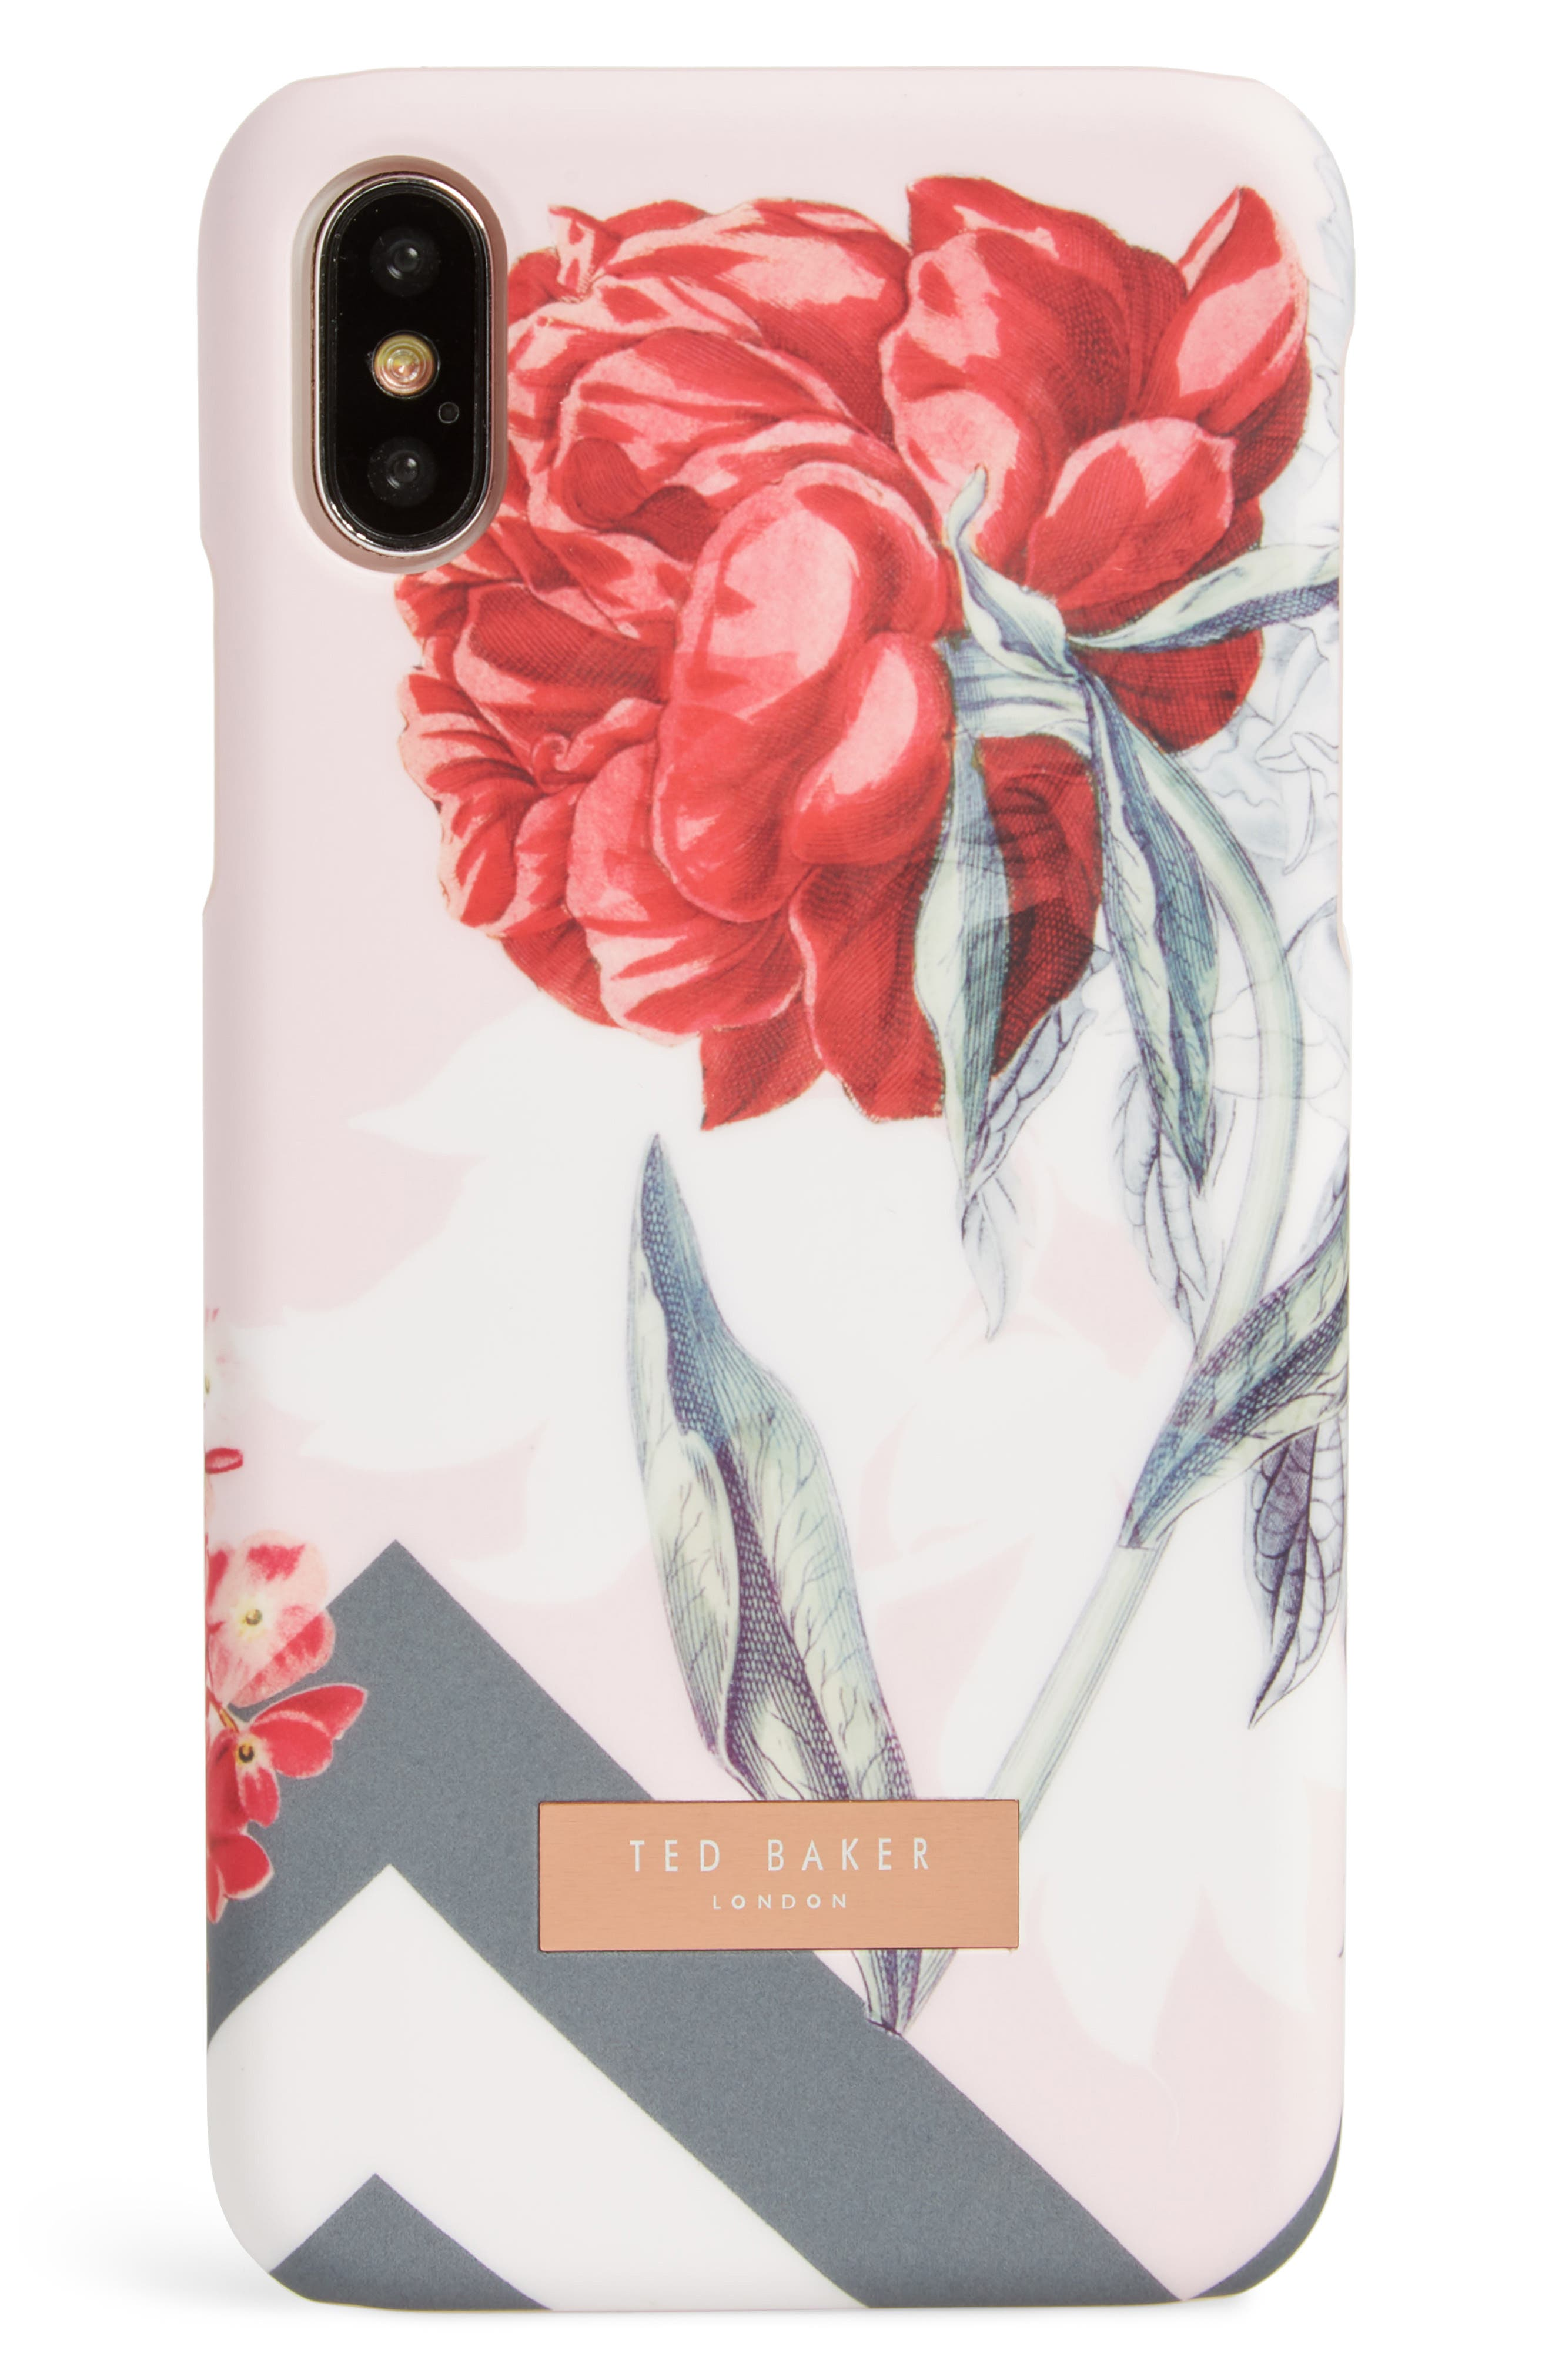 Ted Baker Palace Gardens Iphone 6/6s/7/8 Case RF9iYJdELS